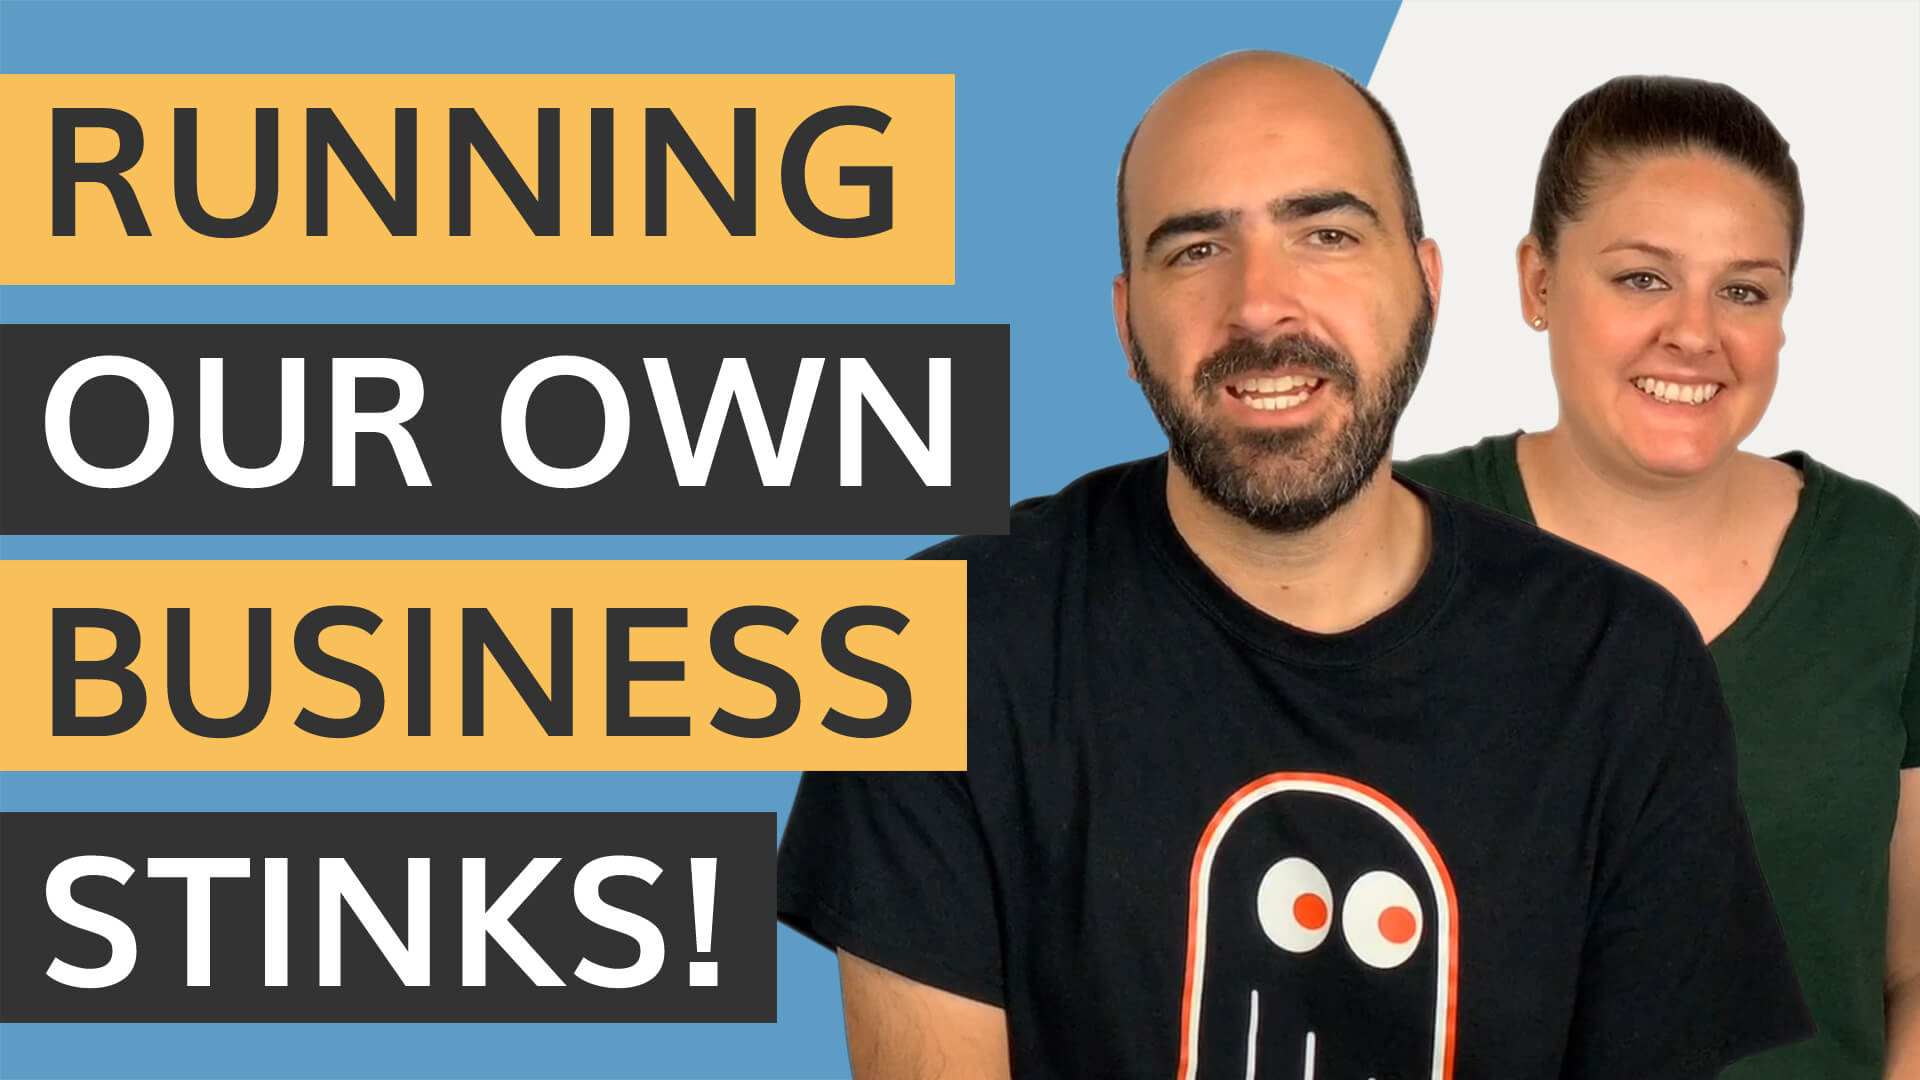 running your own business stinks